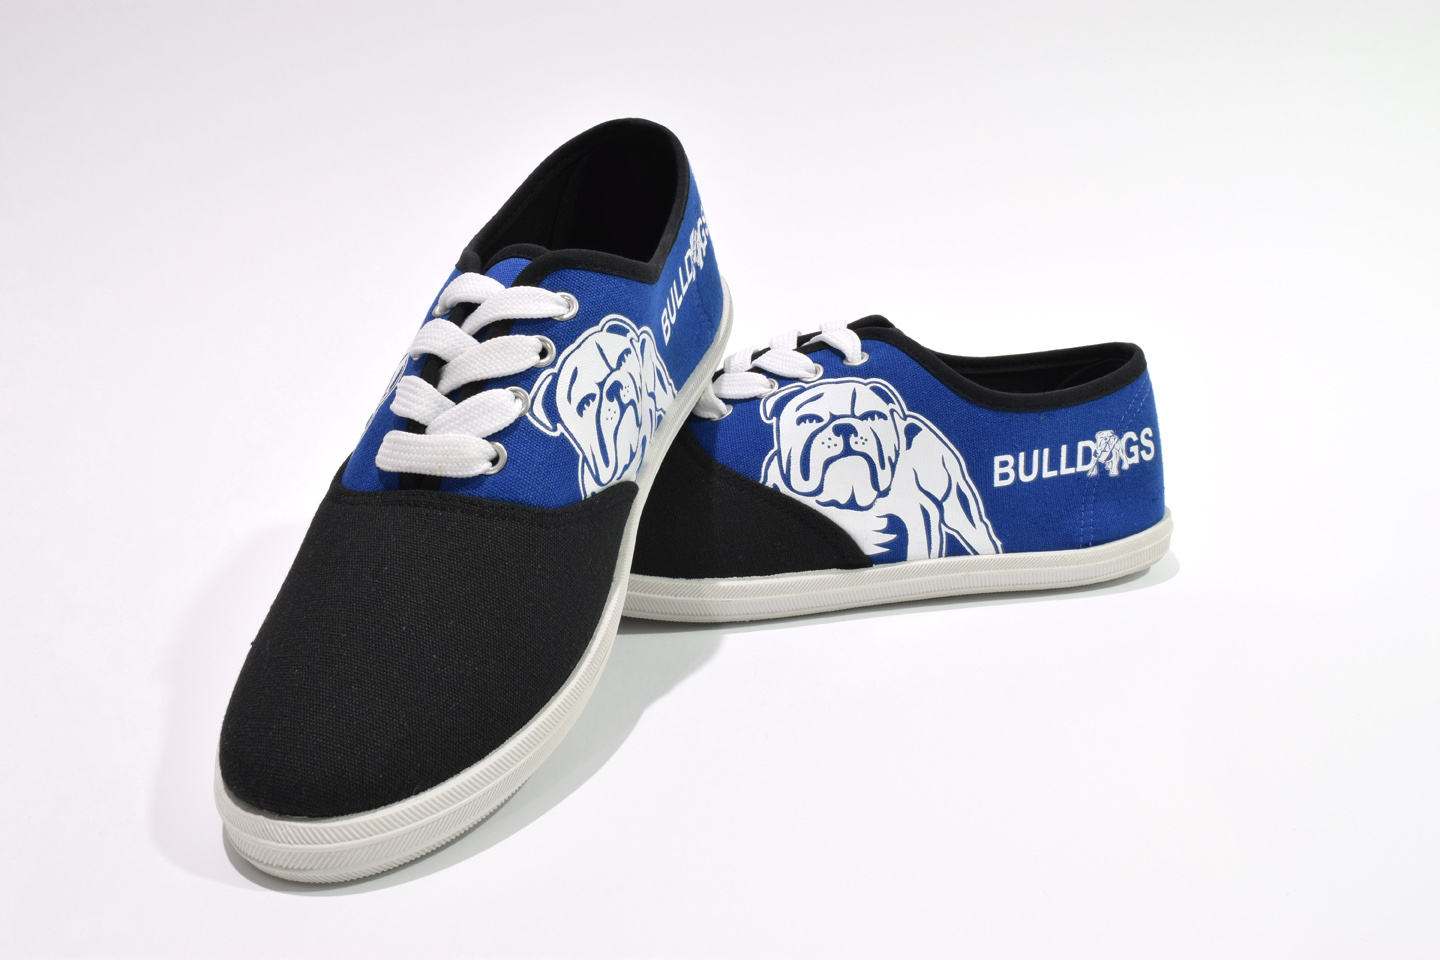 Bulldogs 2 copy